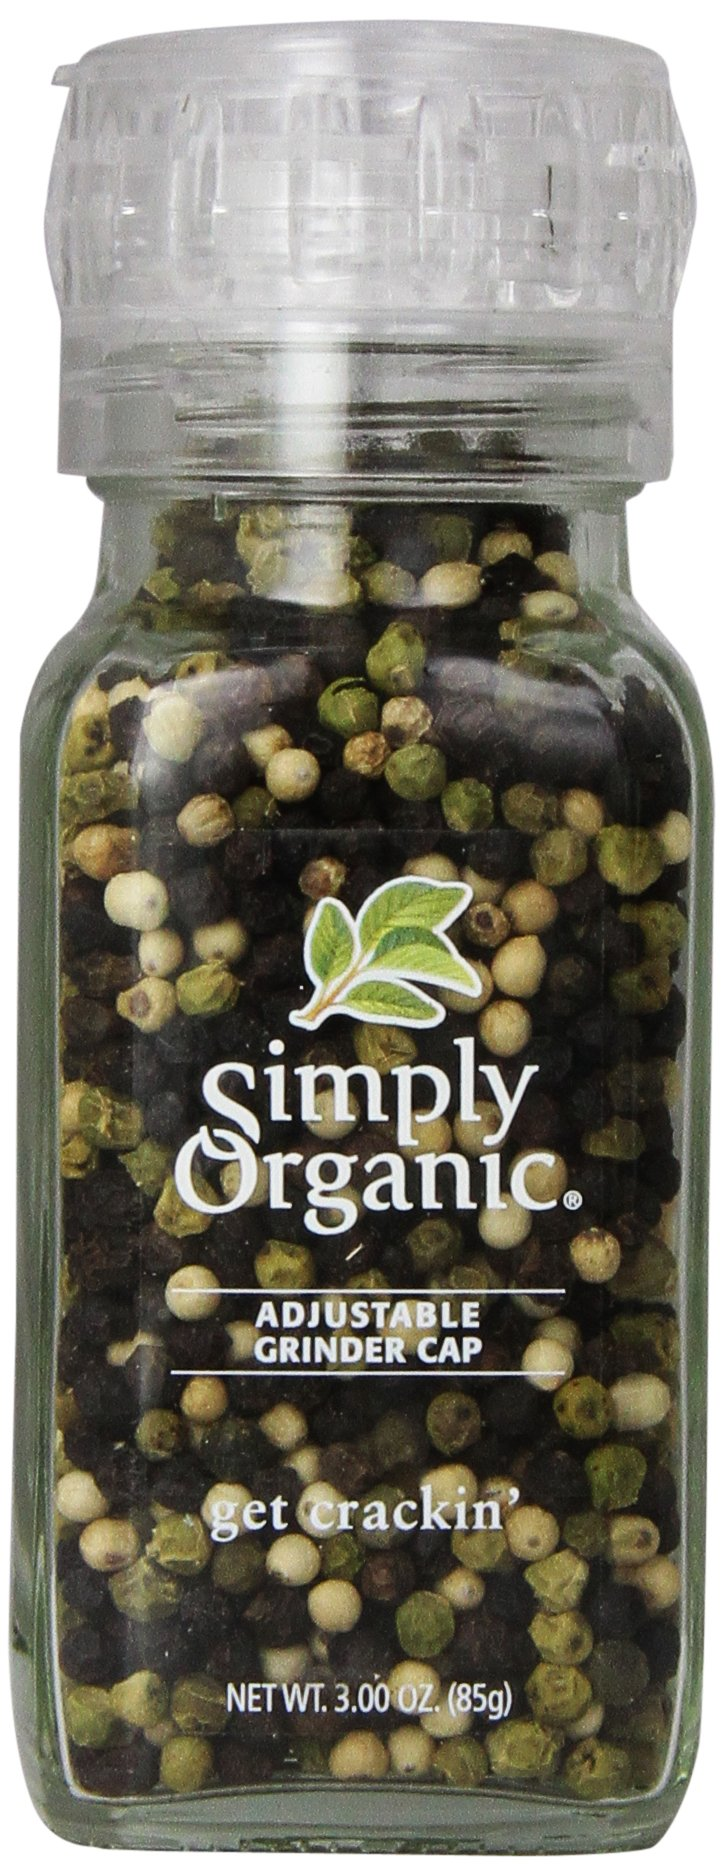 Simply Organic Get Crackin' Certified Organic, 3-Ounce Container by Simply Organic (Image #1)